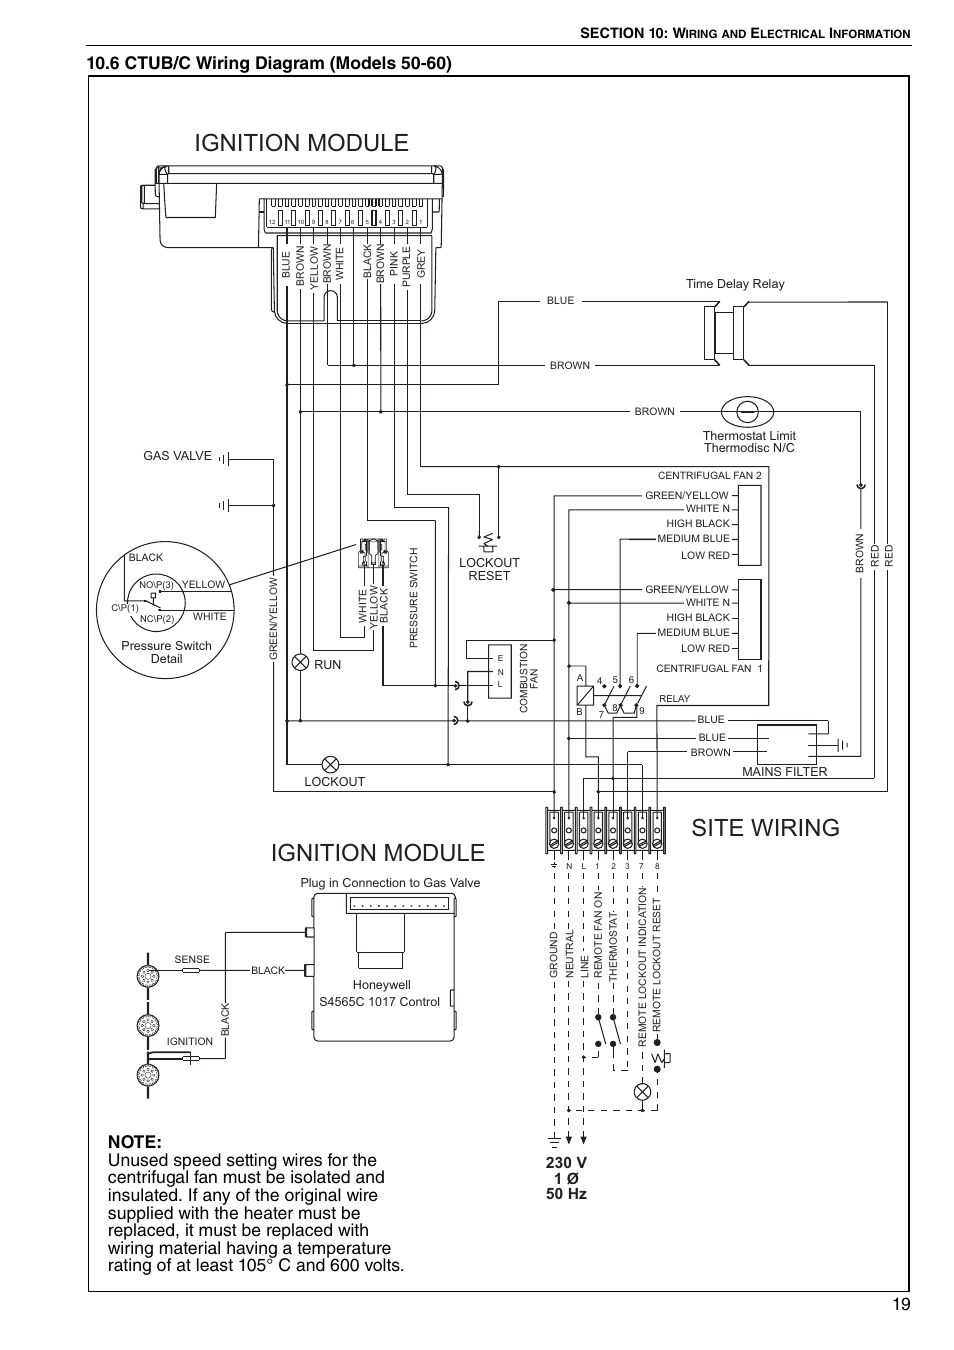 6 Ctub C Wiring Diagram Models 50 60 Ignition Module Site Centrifugal Fan Roberts Gorden Combat Ctu 22 To 115 User Manual Page 25 51